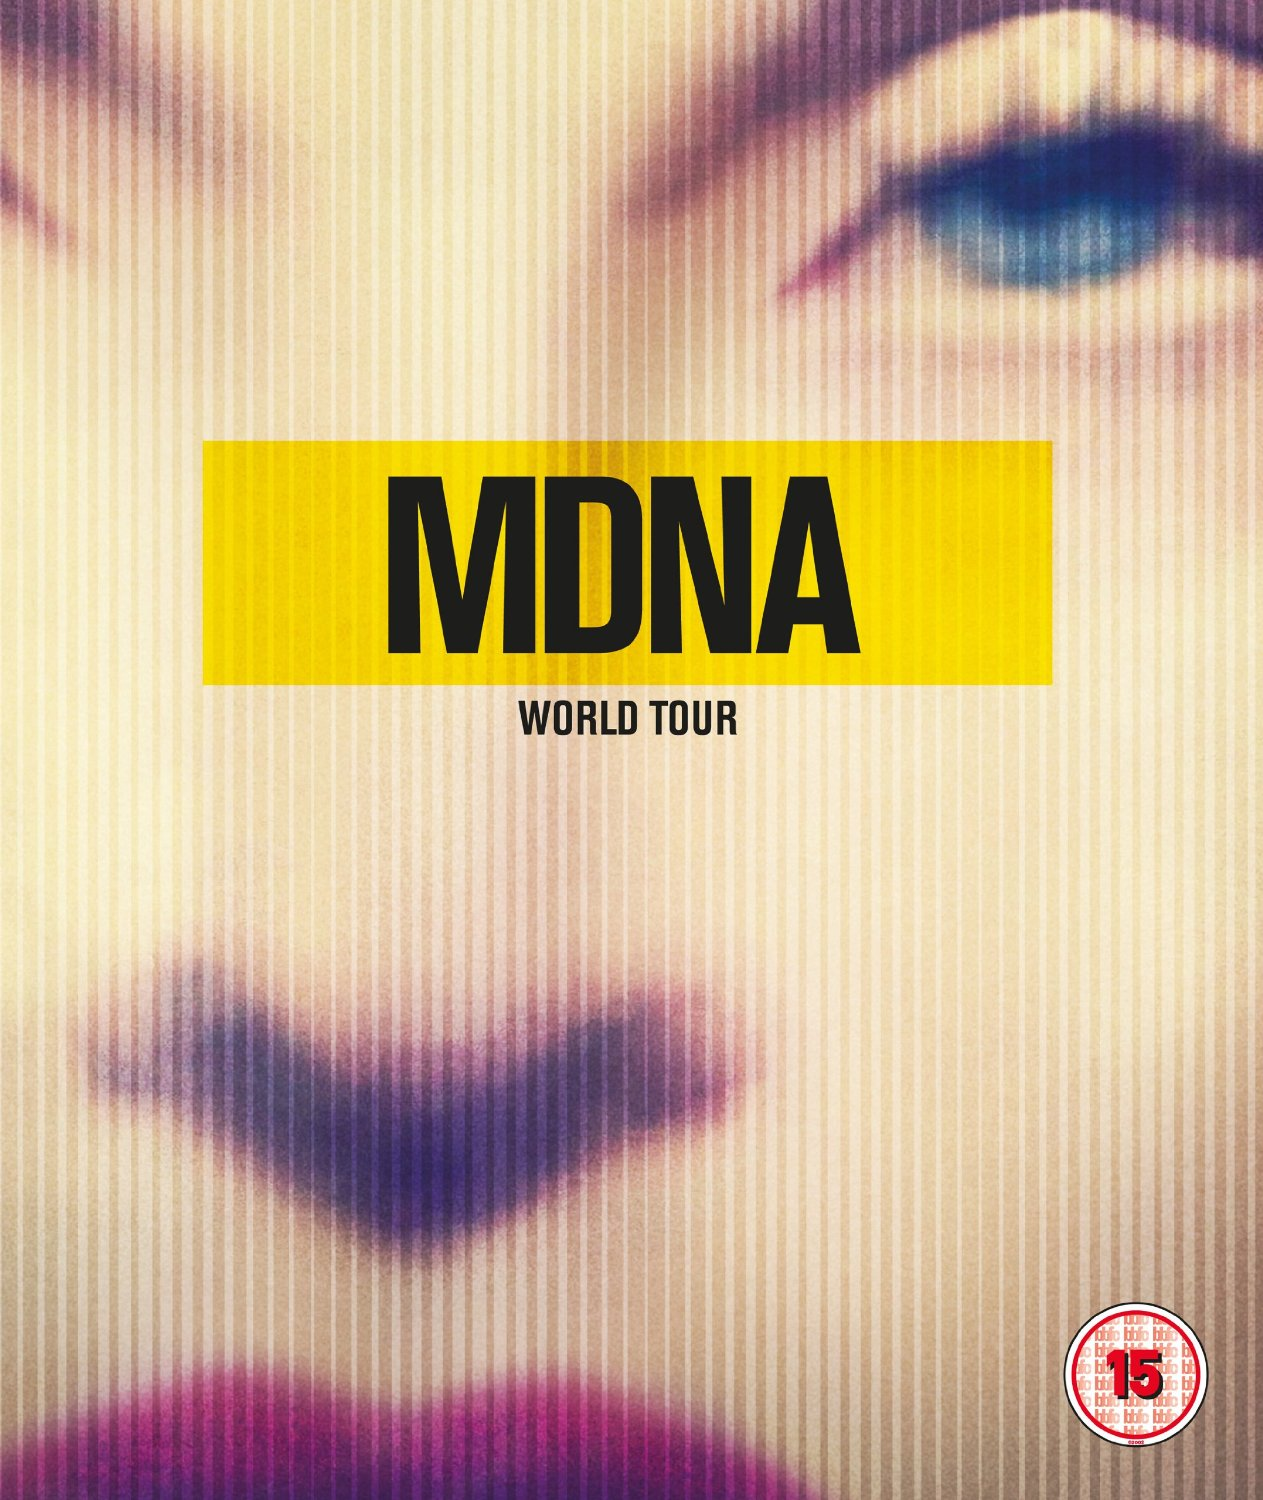 MADONNA MDNA WORLD TOUR BLURAY DVD FRONT Evènement : Le MDNA World Tour E.N.F.I.N Disponible !